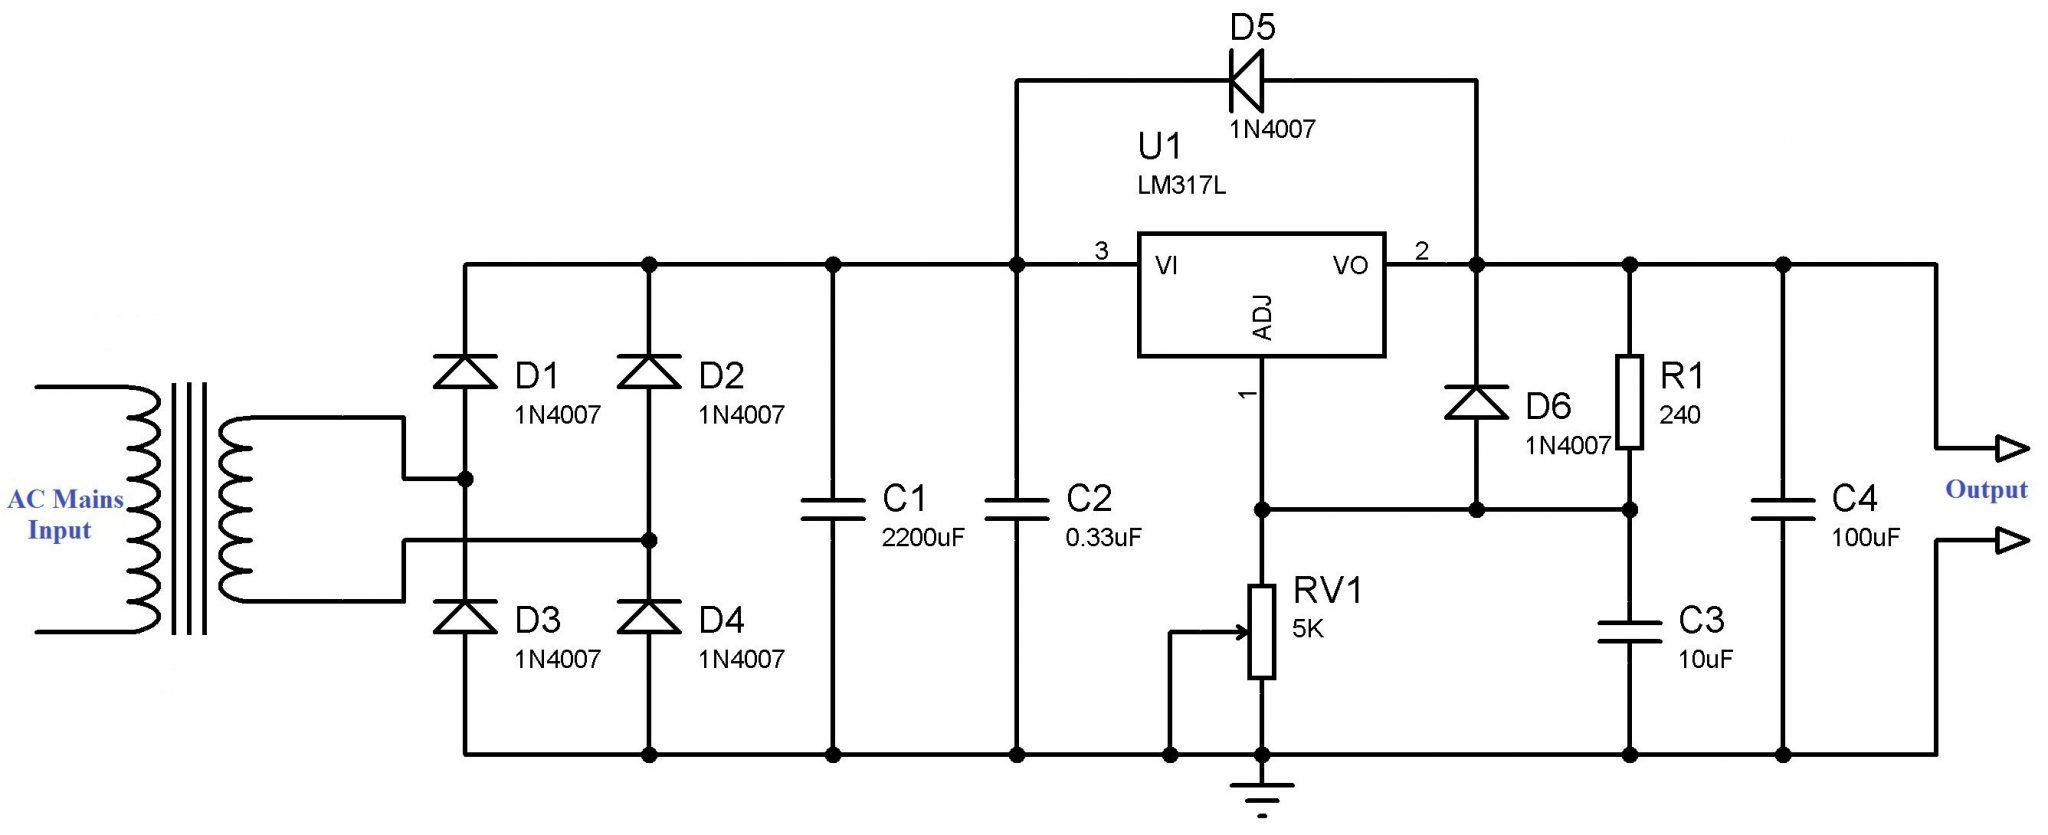 Lm317 Power Supply Circuit Diagram Variable Output Voltage - Wiring